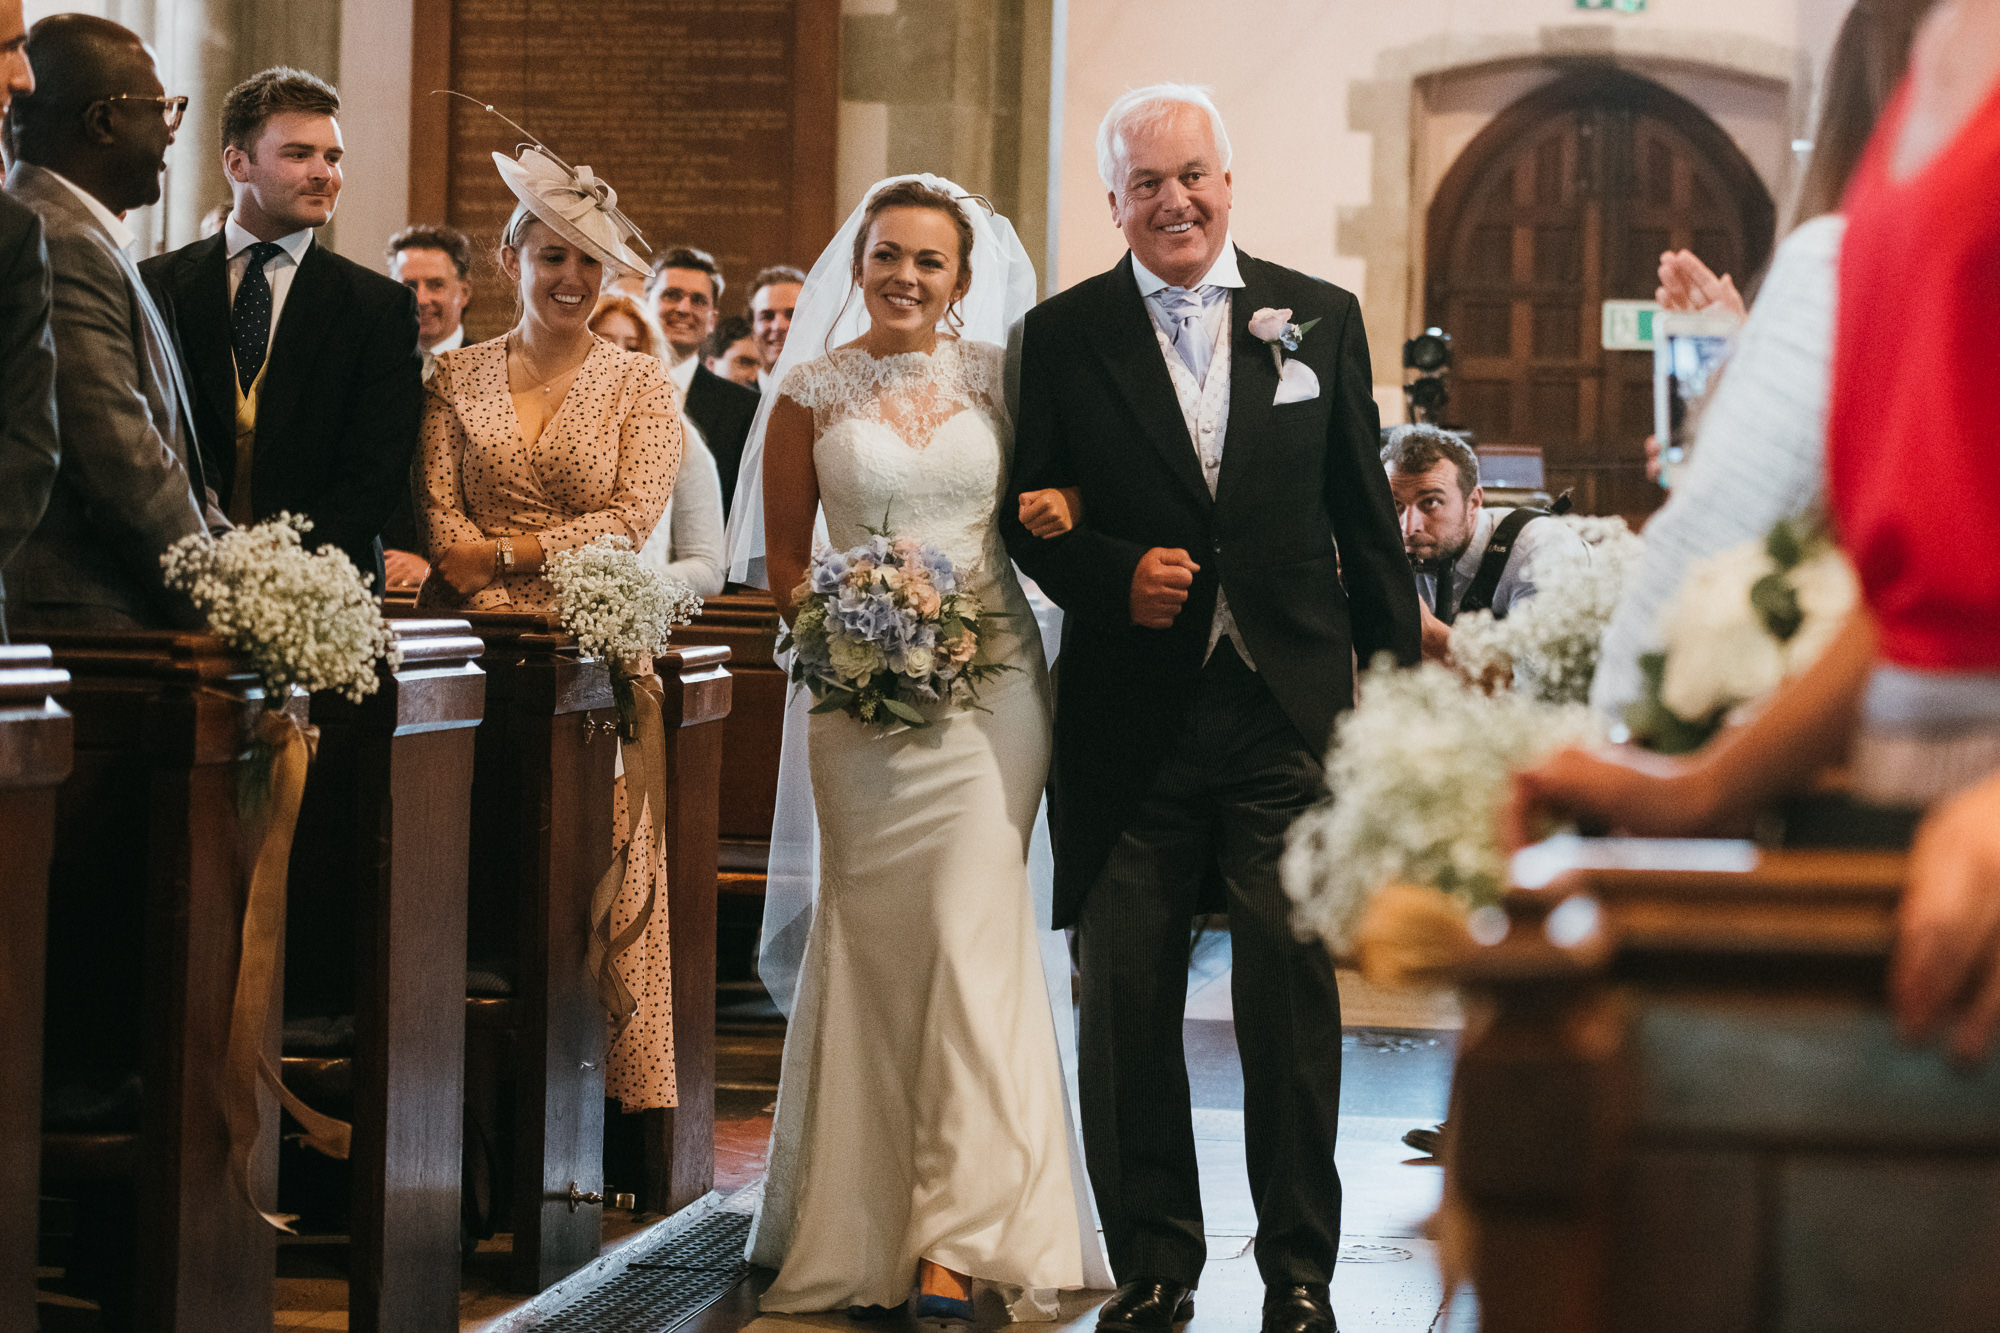 St Mary the Virgin Church wedding